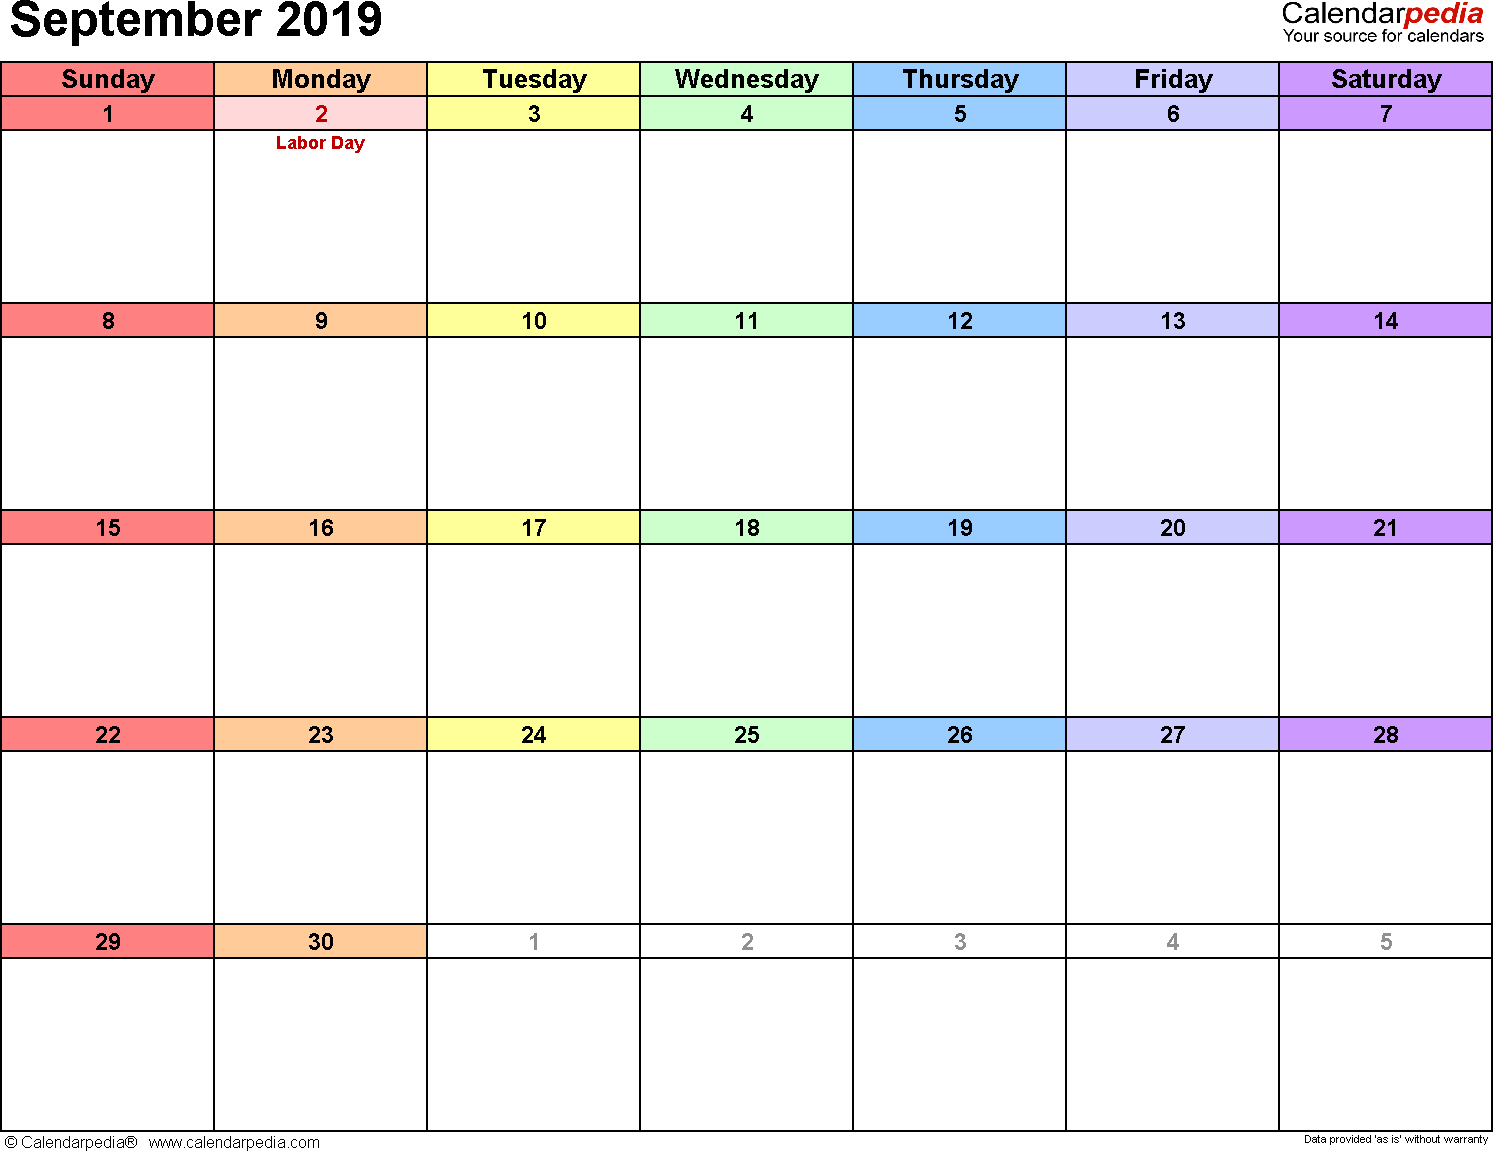 September 2019 calendar printable template